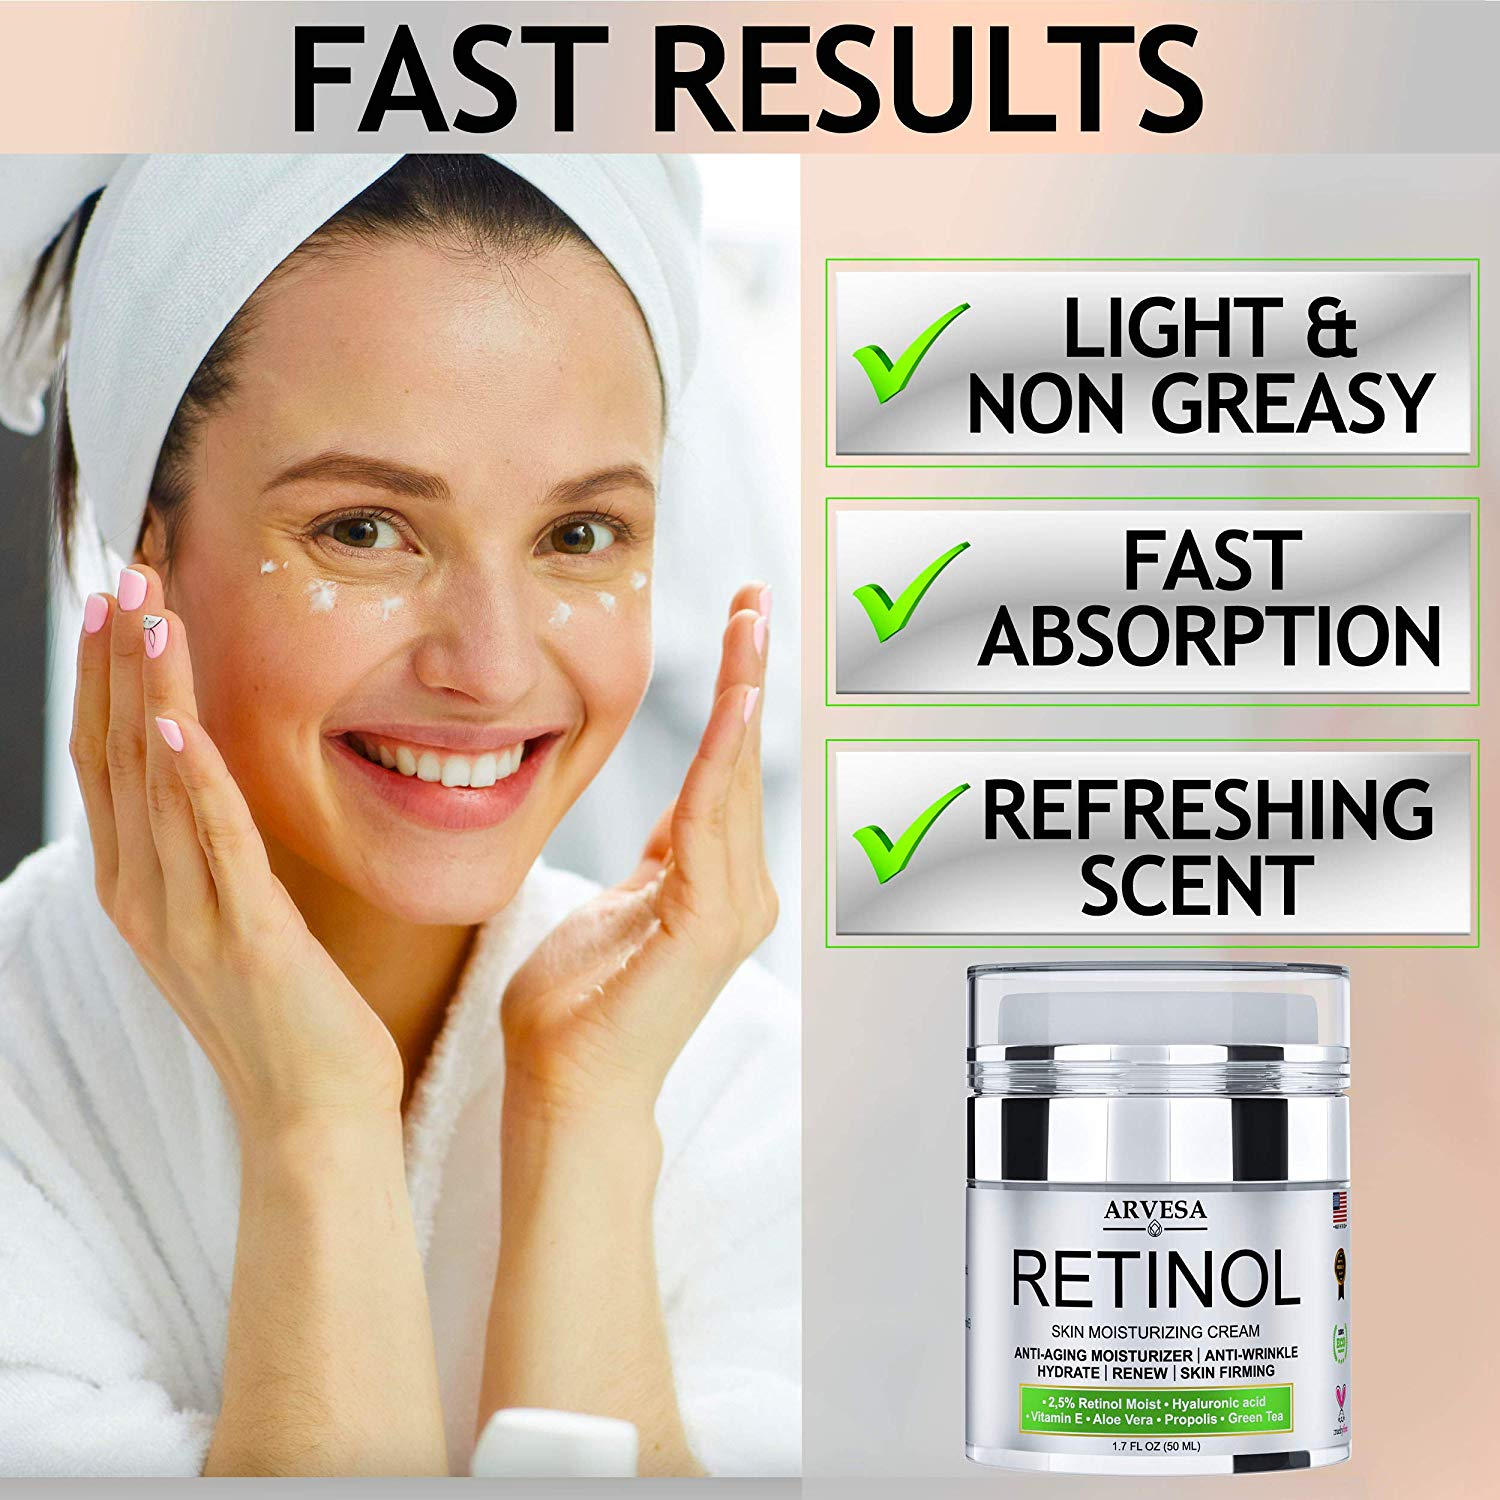 Review of Natural Retinol Moisturizer Cream for Face and Eye Area - Made in USA - with Hyaluronic Acid - Active Retinol 2.5% - Anti Aging Face Cream